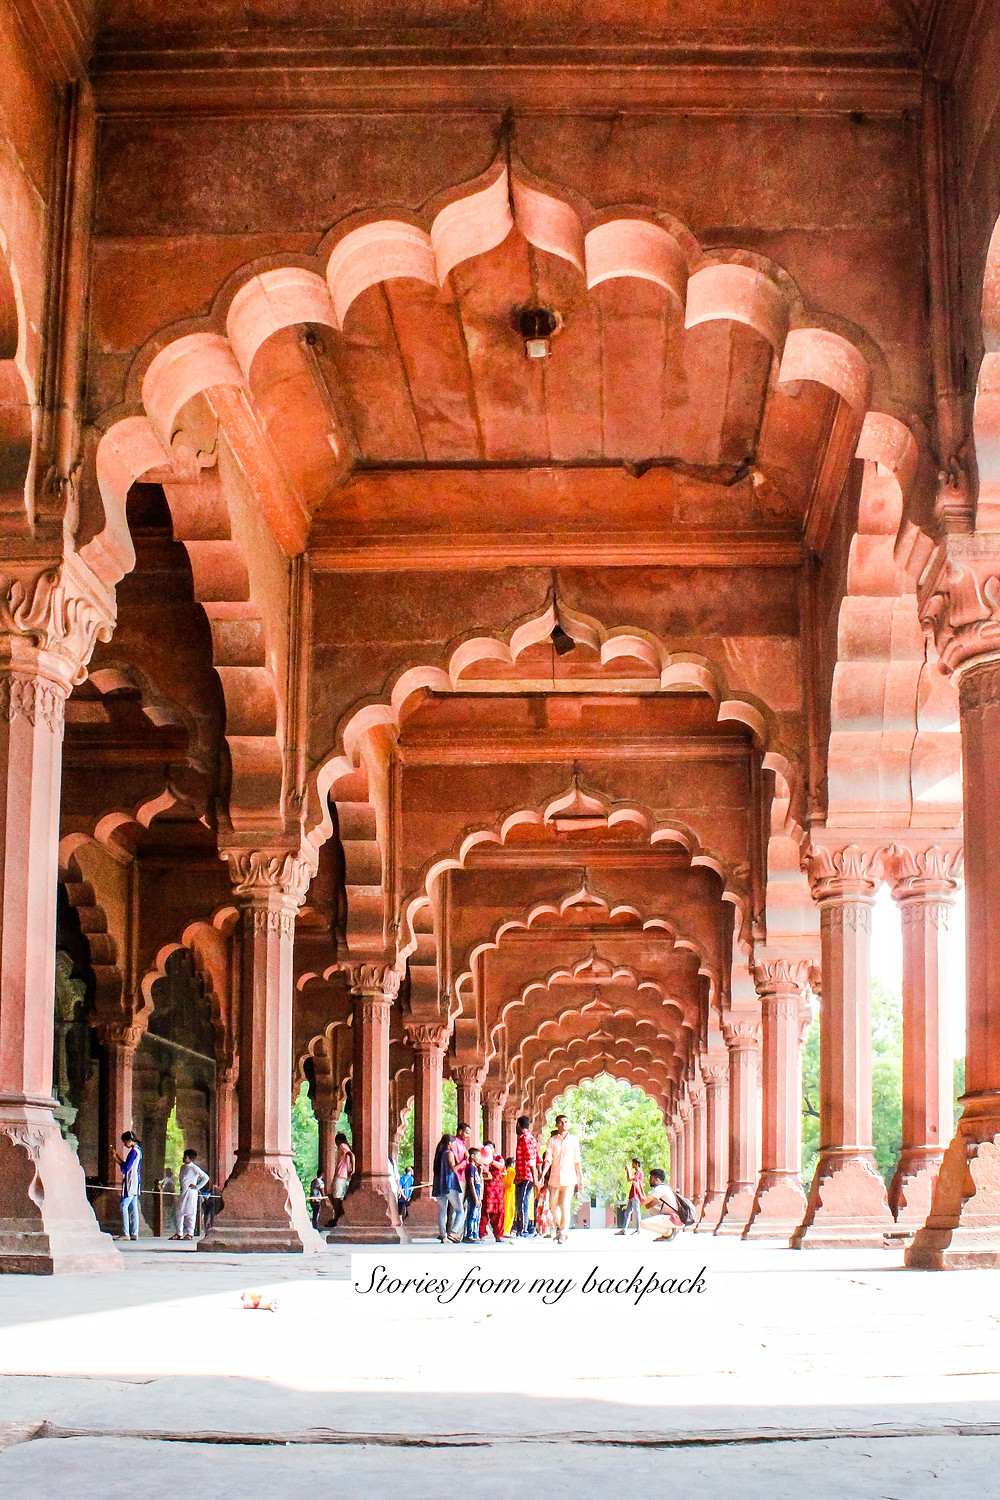 Red Fort, Sightseeing in New Delhi, best places to visit in India, New Delhi tourism, sightseeing in Delhi, things to do in Delhi, is it safe to travel to Delhi, Delhi safety, Delhi nightlife